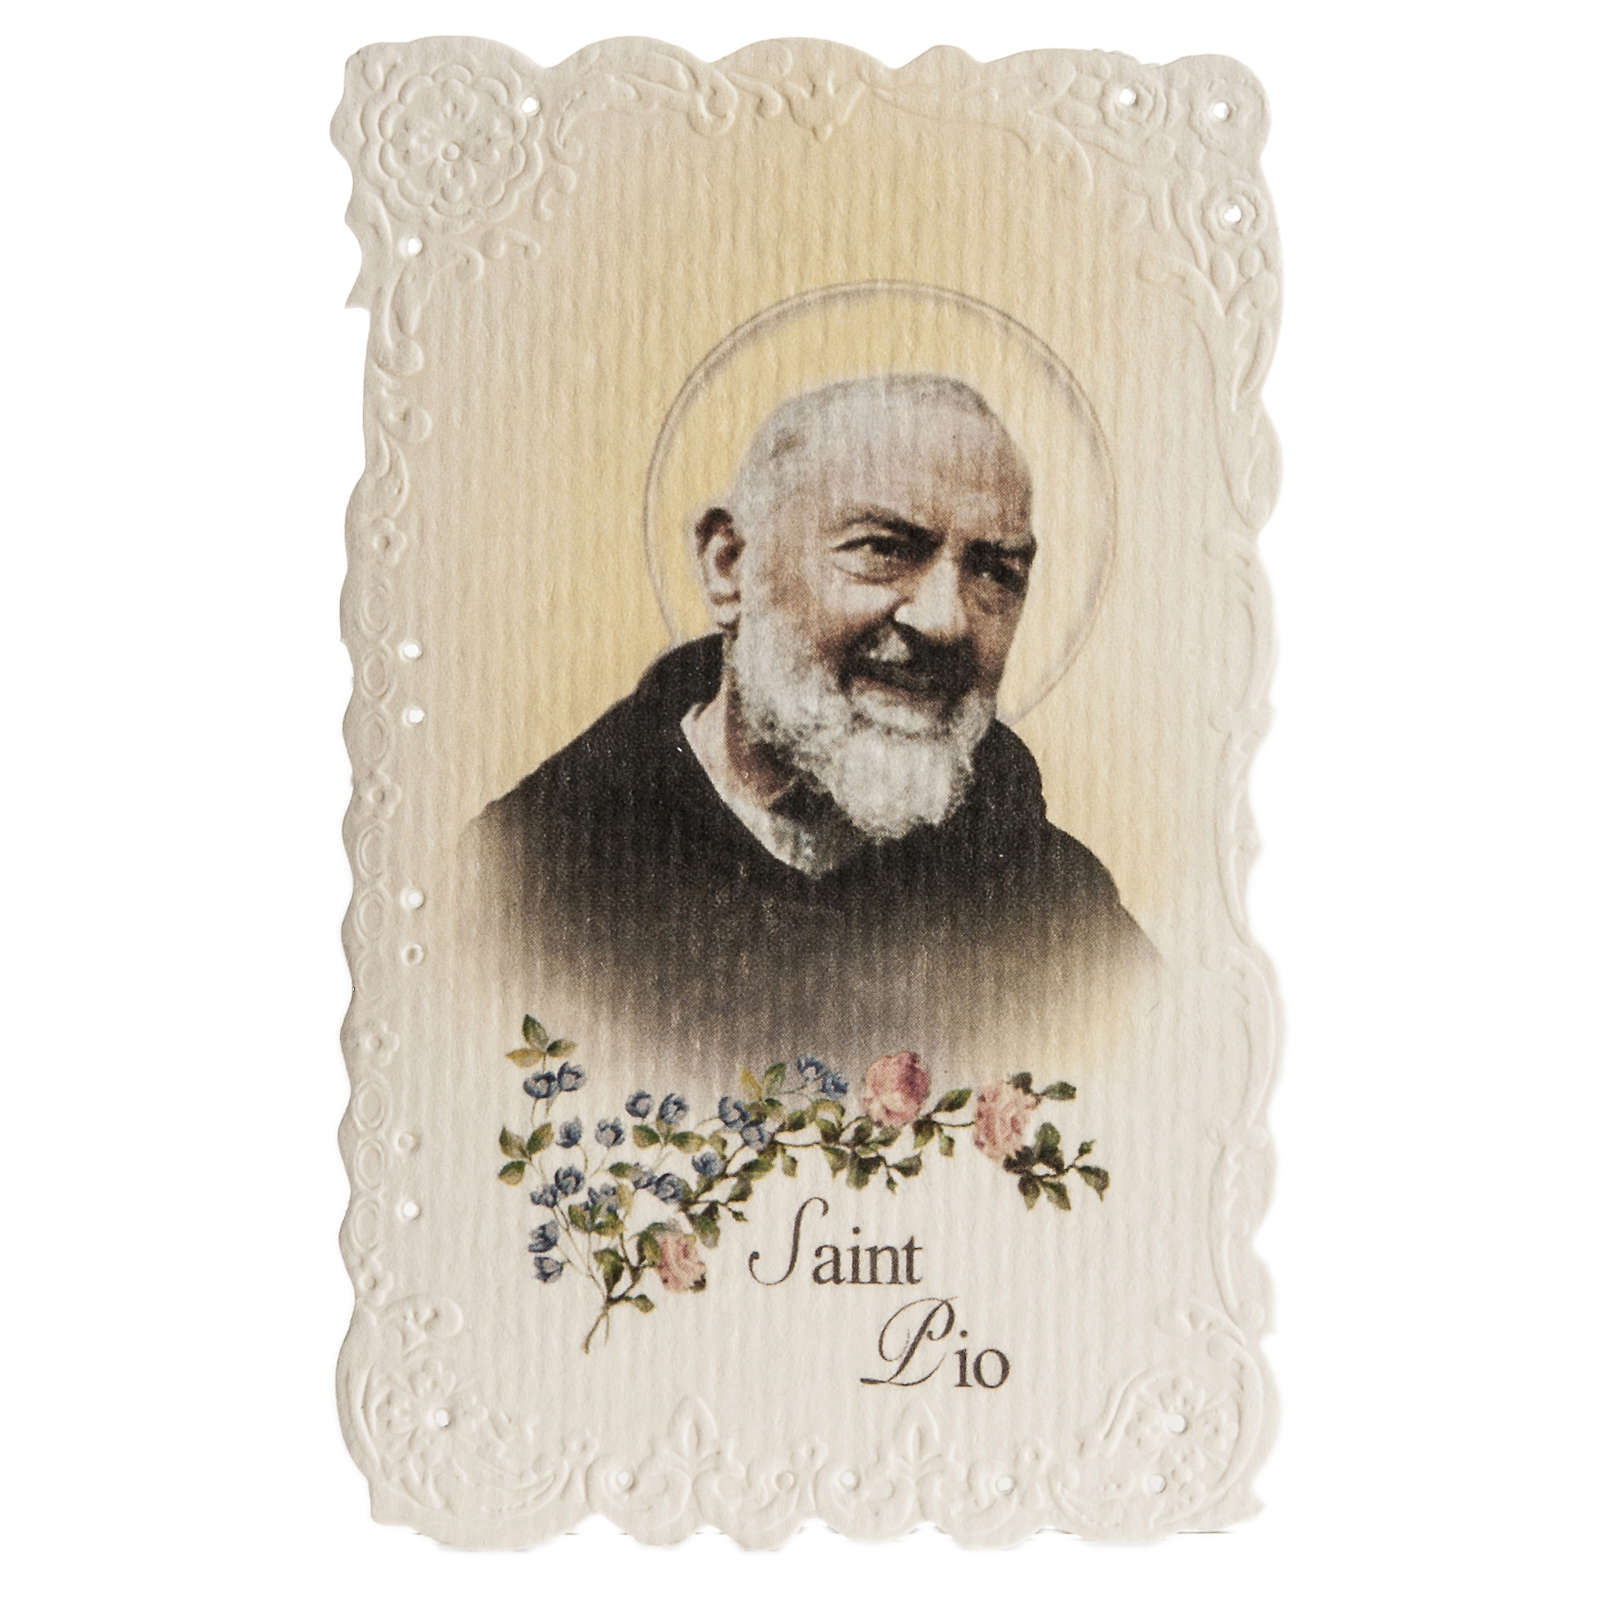 Saint Pio holy card with prayer in ENGLISH 4